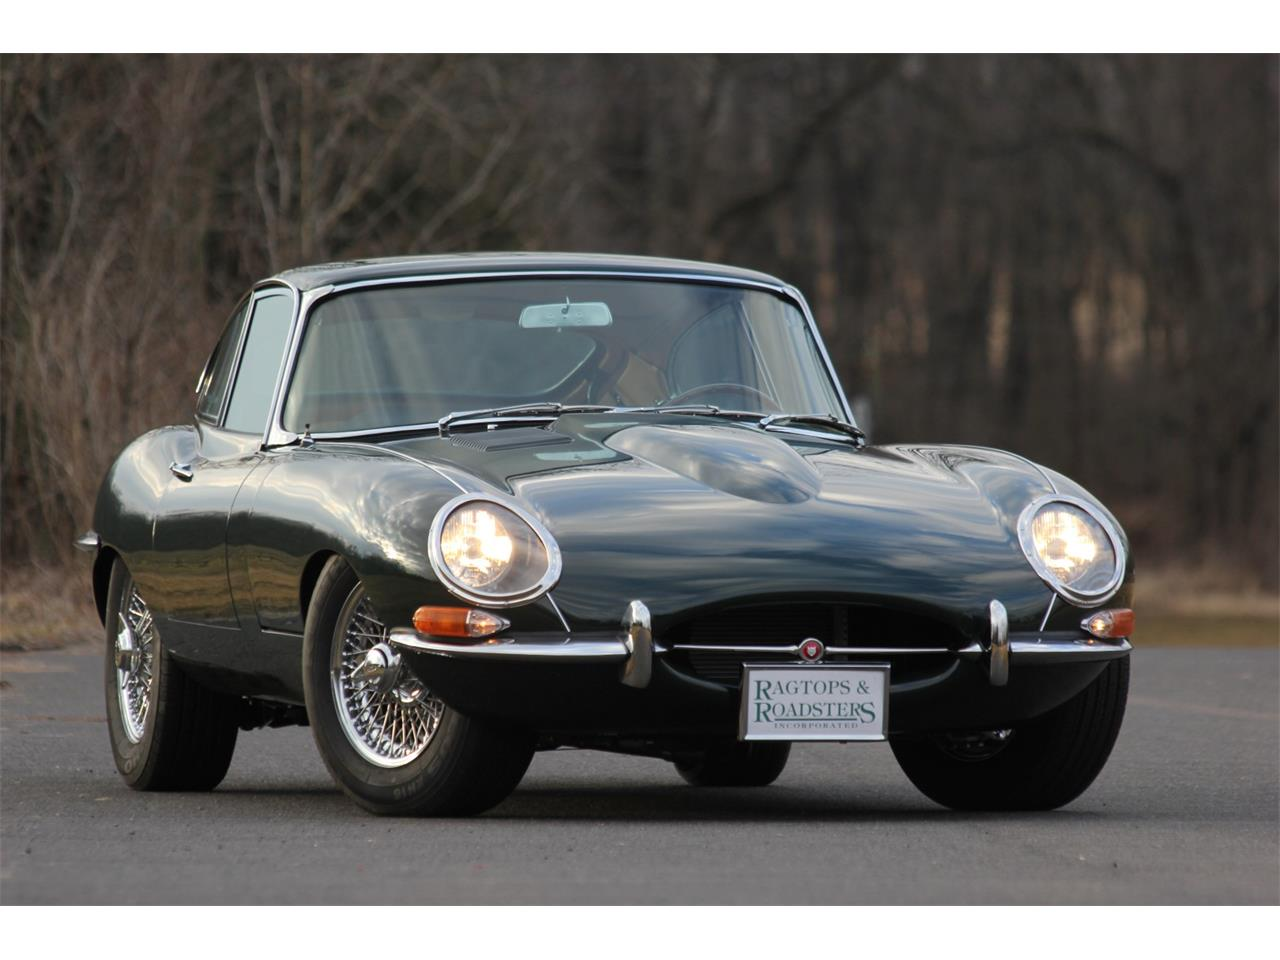 Large Picture of Classic 1963 E-Type located in Las Vegas Nevada - $130,000.00 Offered by a Private Seller - L6E3